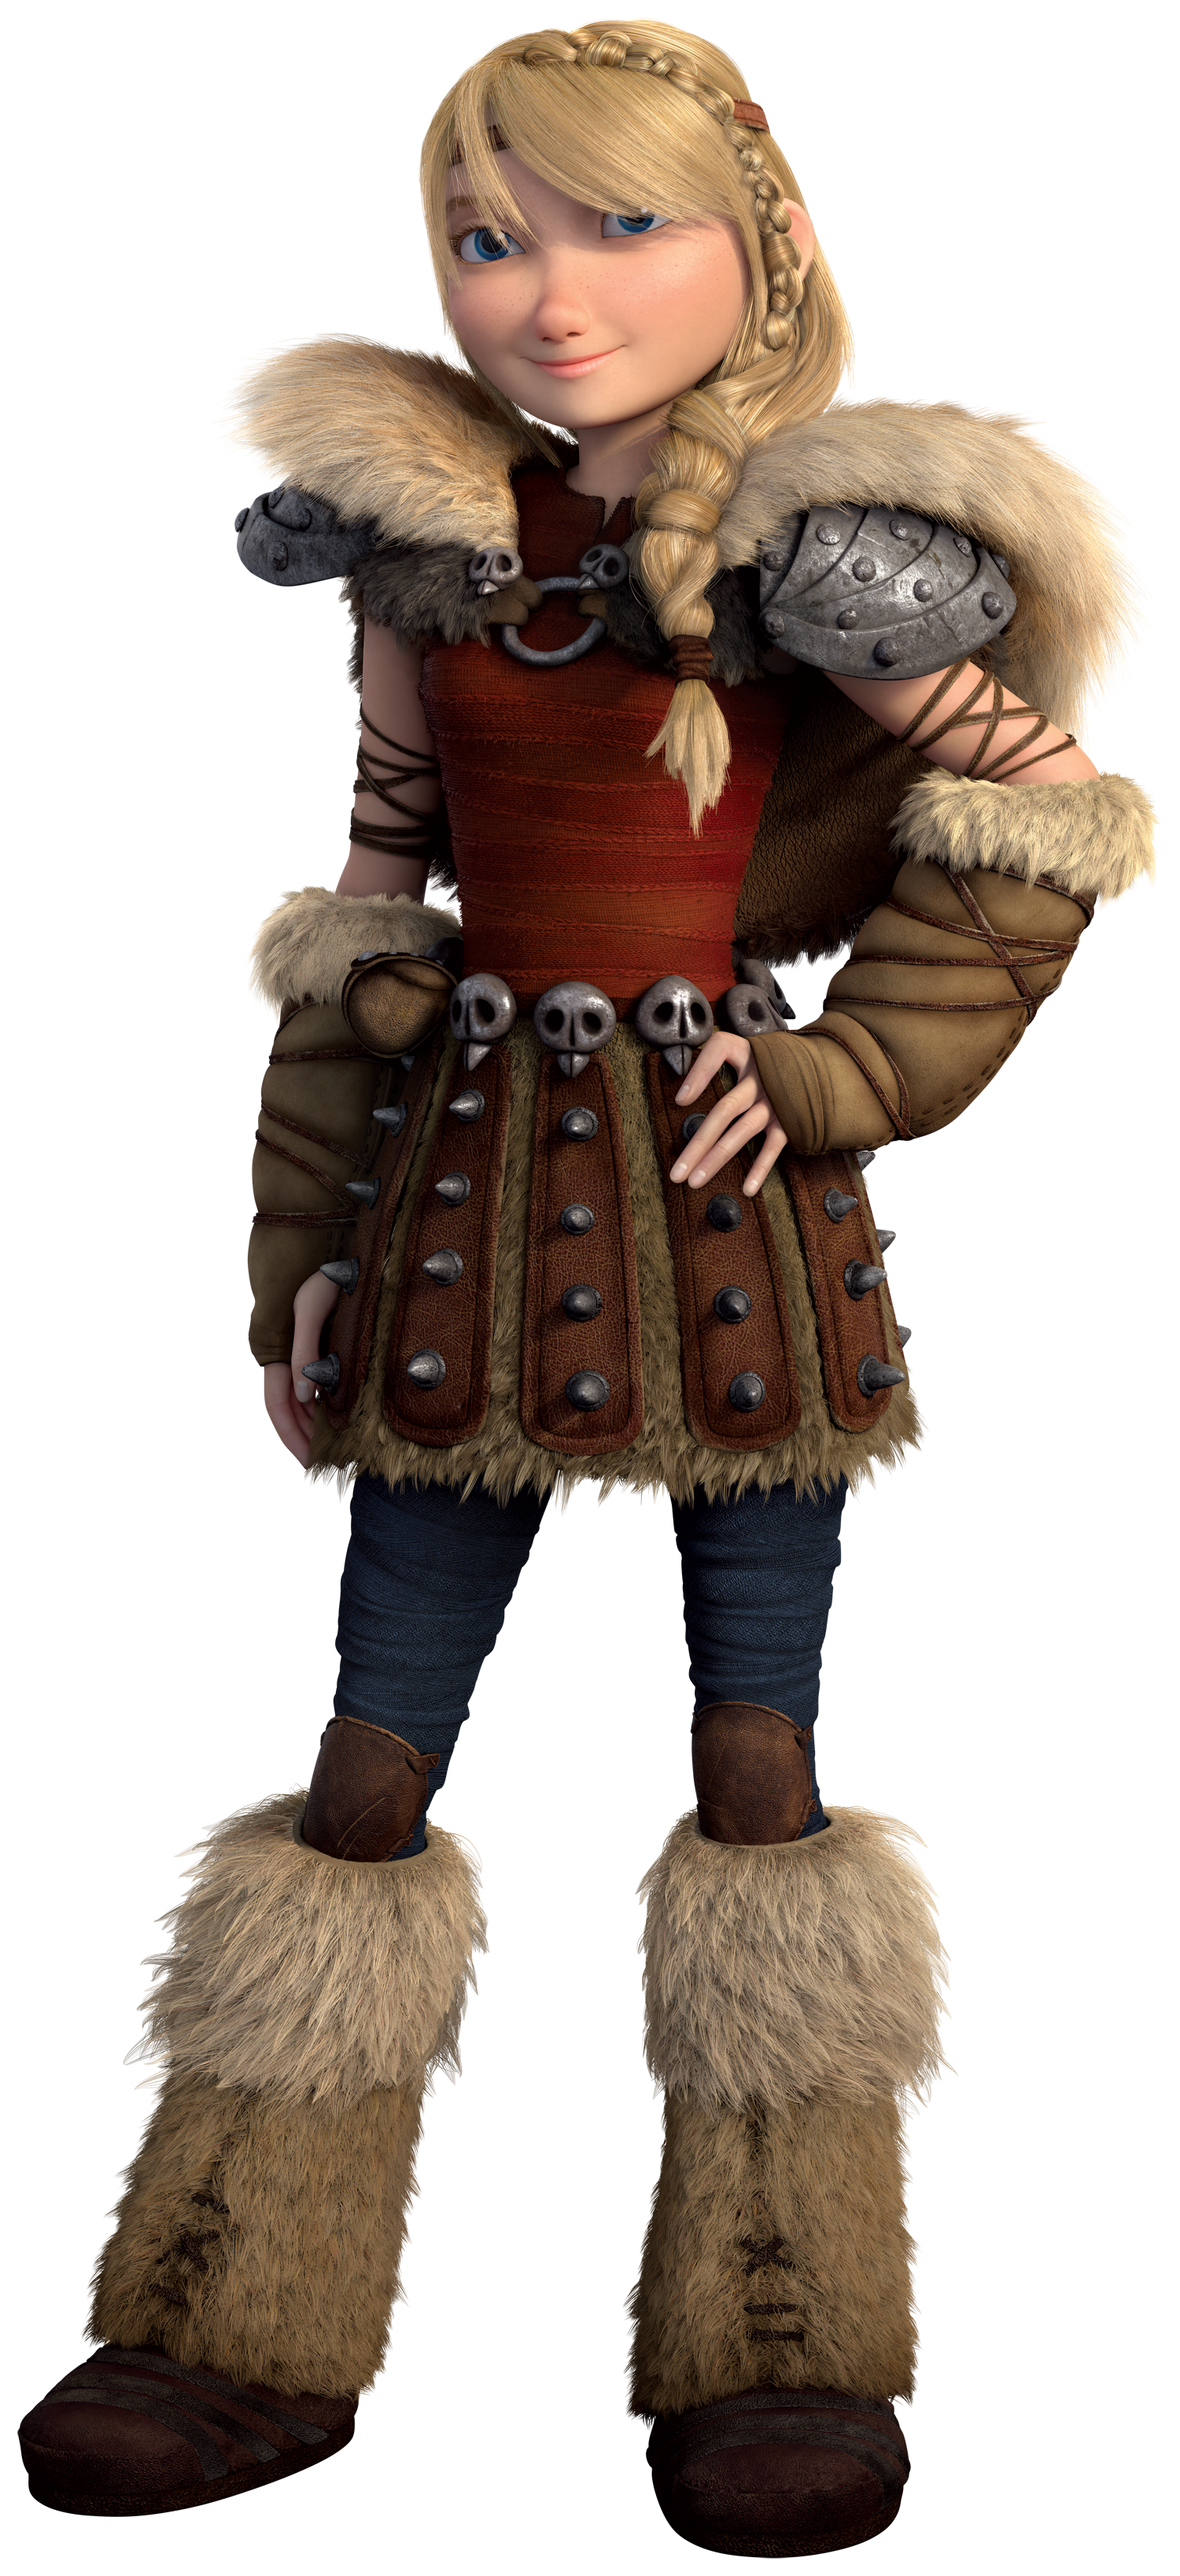 Astrid hofferson how to train your dragon wiki fandom powered by 20 years old ccuart Gallery